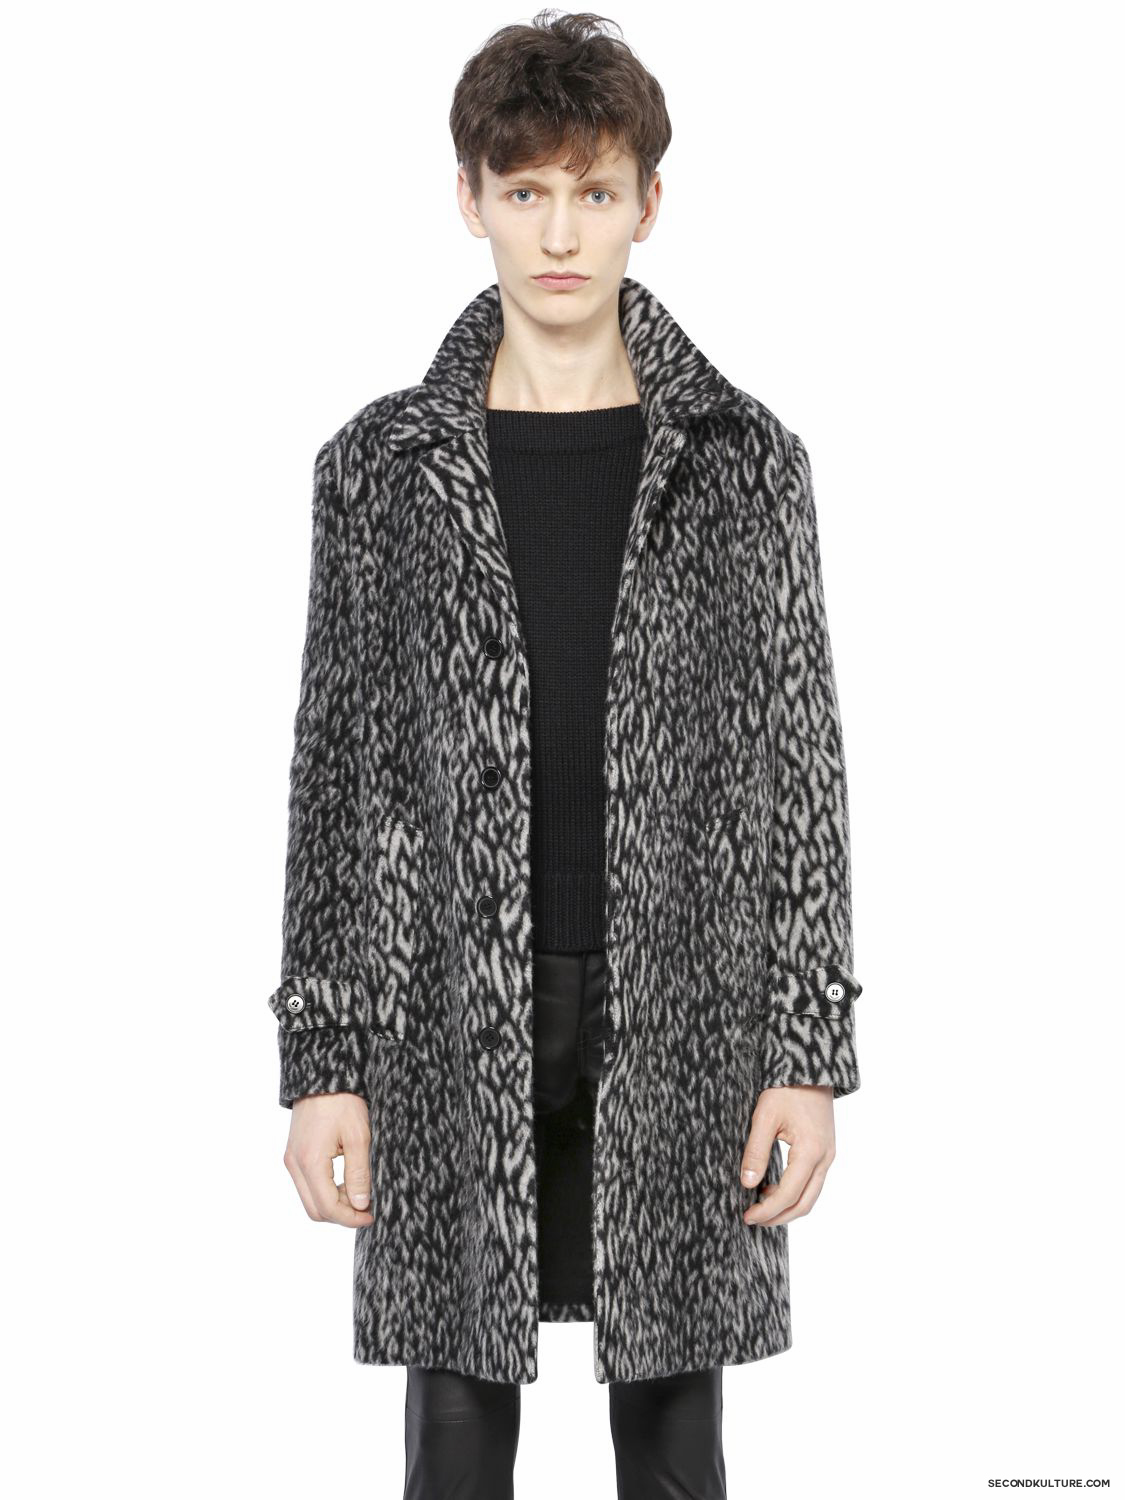 Saint-Laurent-Babycat-Wool-Blend-Coat-Fall-Winter-2015-1